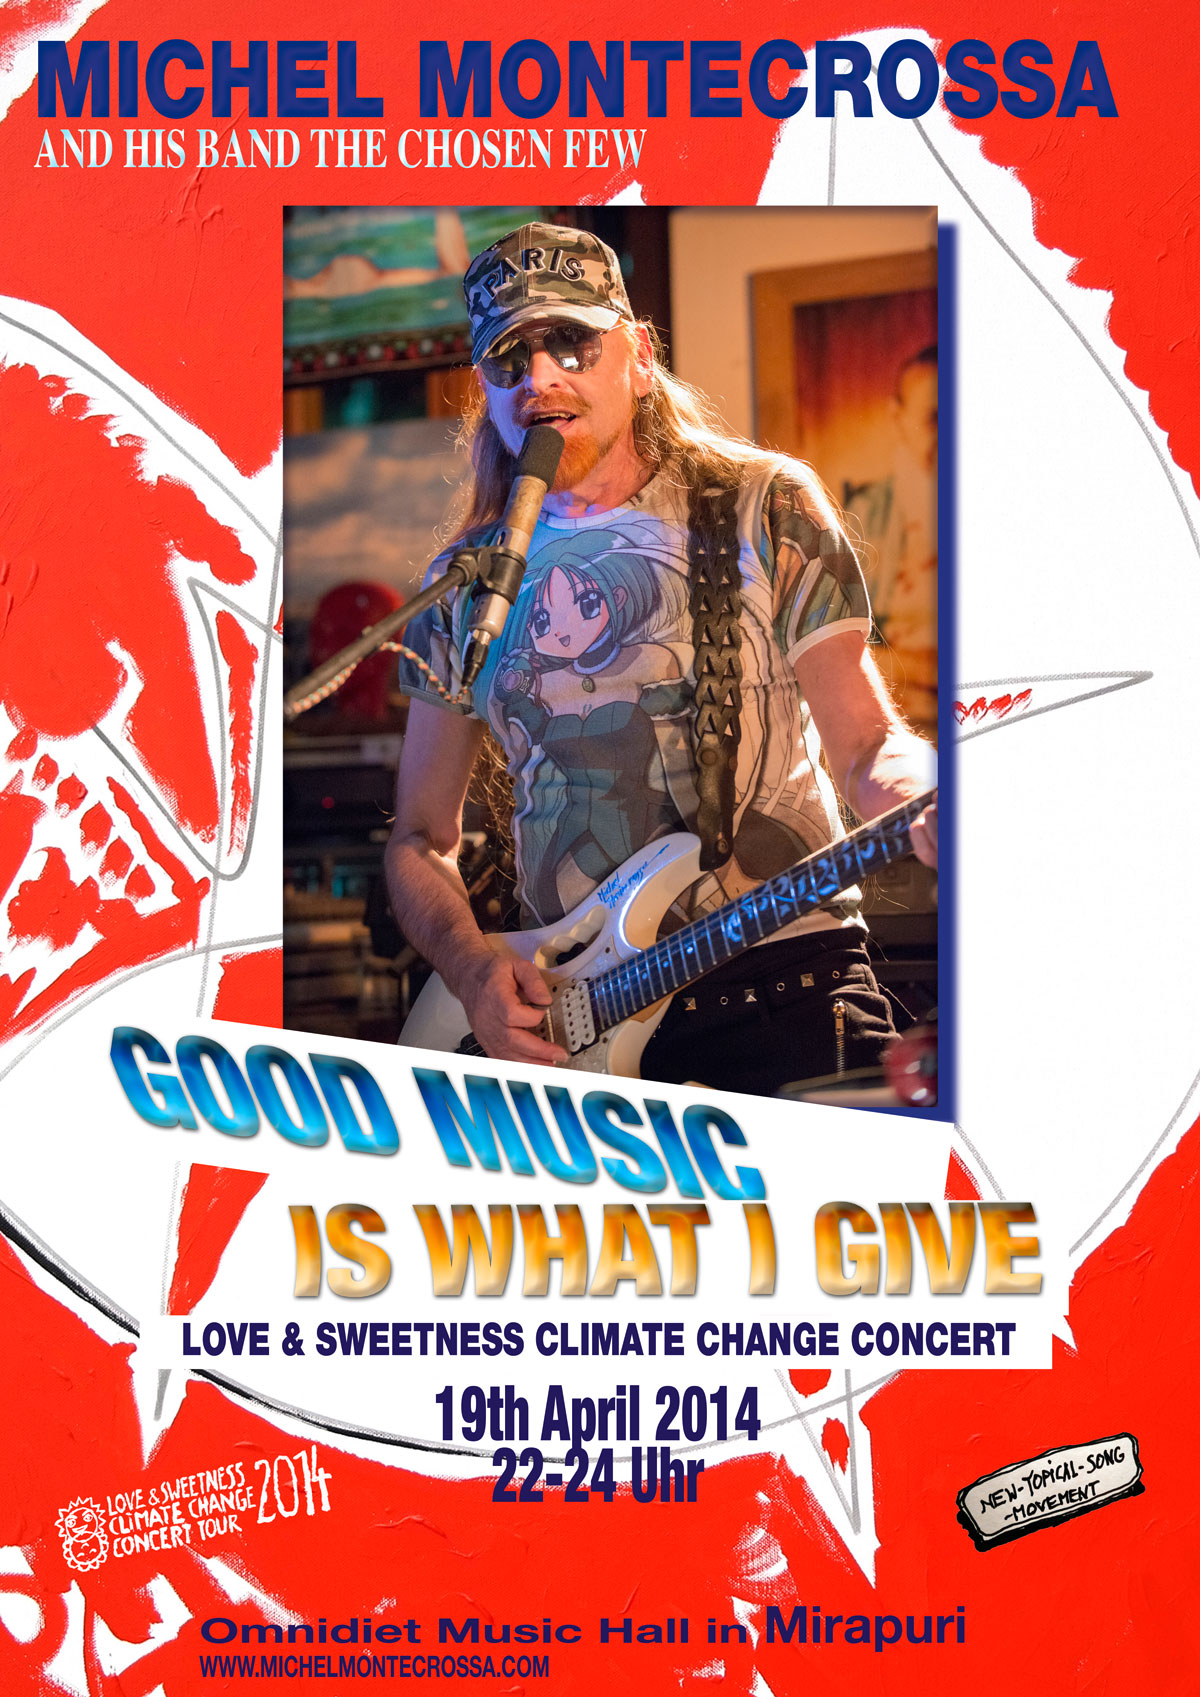 Good Music Is What I Give Concert